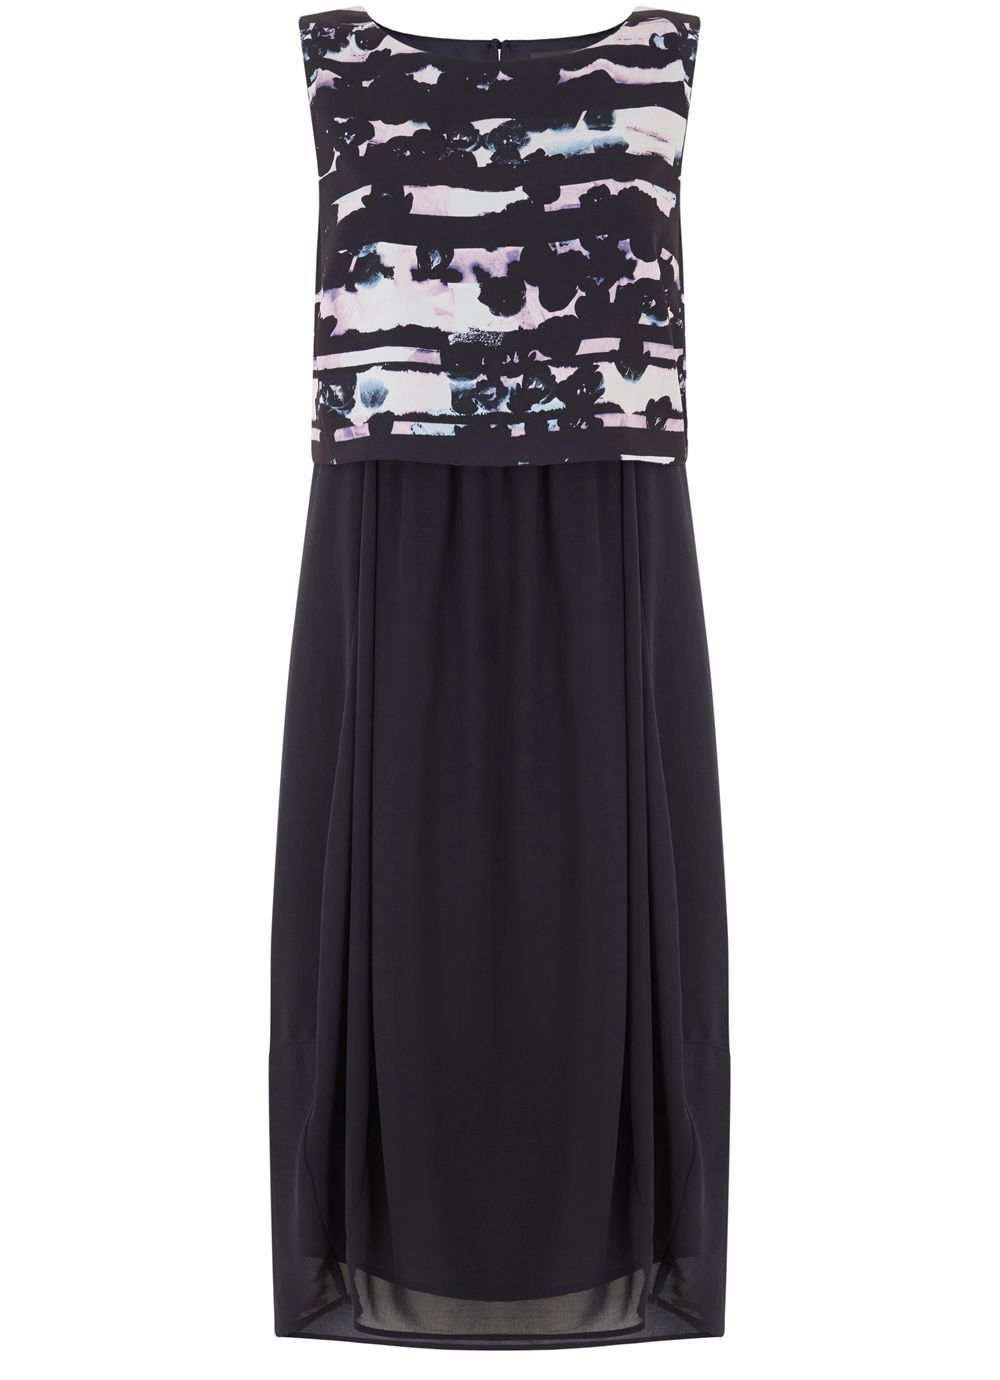 Amelia Print Dress, Multi Coloured - sleeve style: sleeveless; secondary colour: white; predominant colour: navy; occasions: evening; length: on the knee; fit: fitted at waist & bust; style: fit & flare; fibres: polyester/polyamide - 100%; neckline: crew; sleeve length: sleeveless; pattern type: fabric; pattern: patterned/print; texture group: other - light to midweight; multicoloured: multicoloured; season: s/s 2016; wardrobe: event